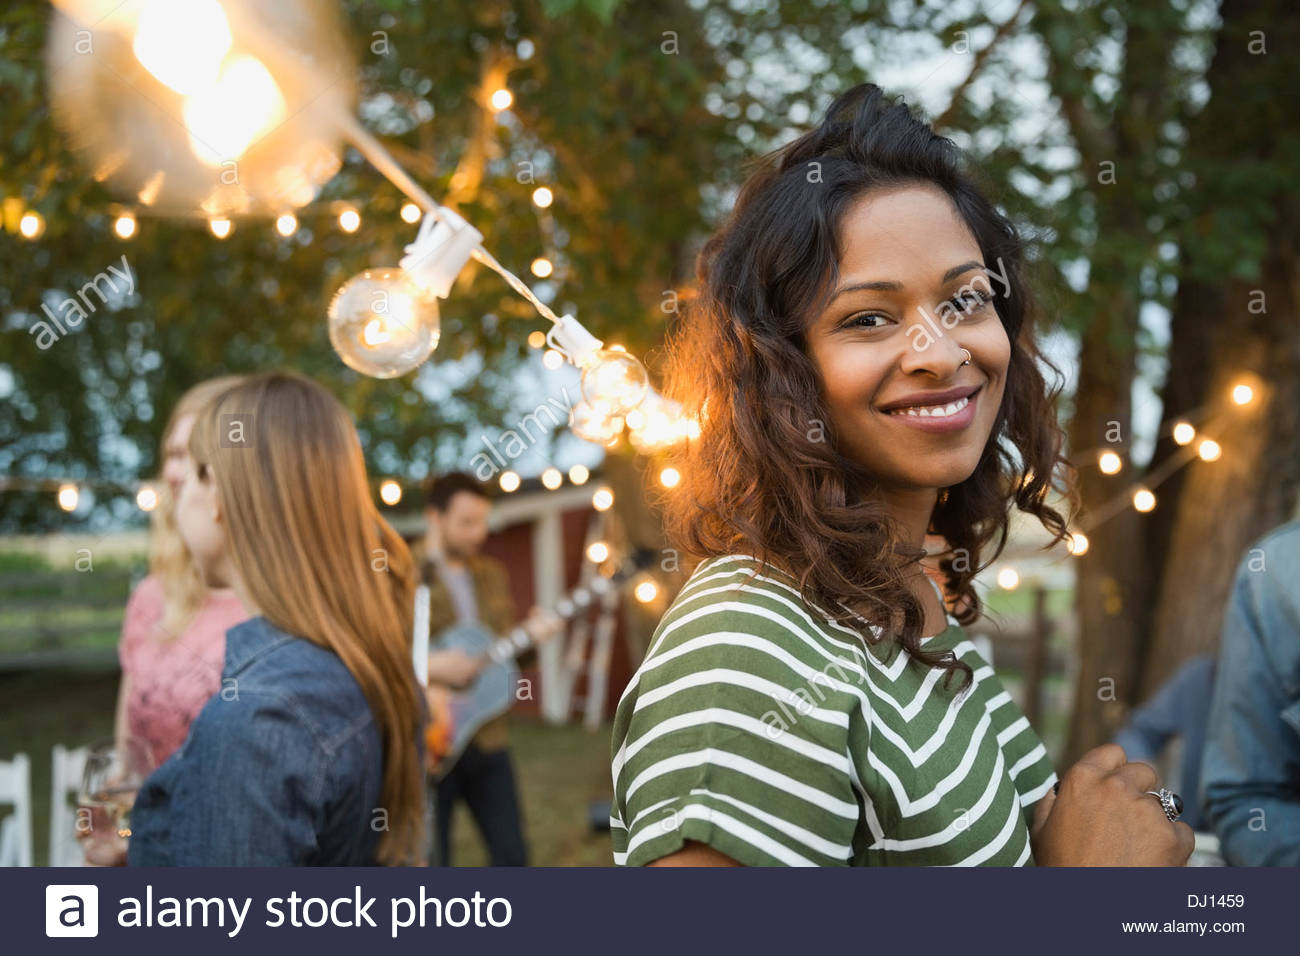 Portrait of smiling woman at outdoor party - Stock Image